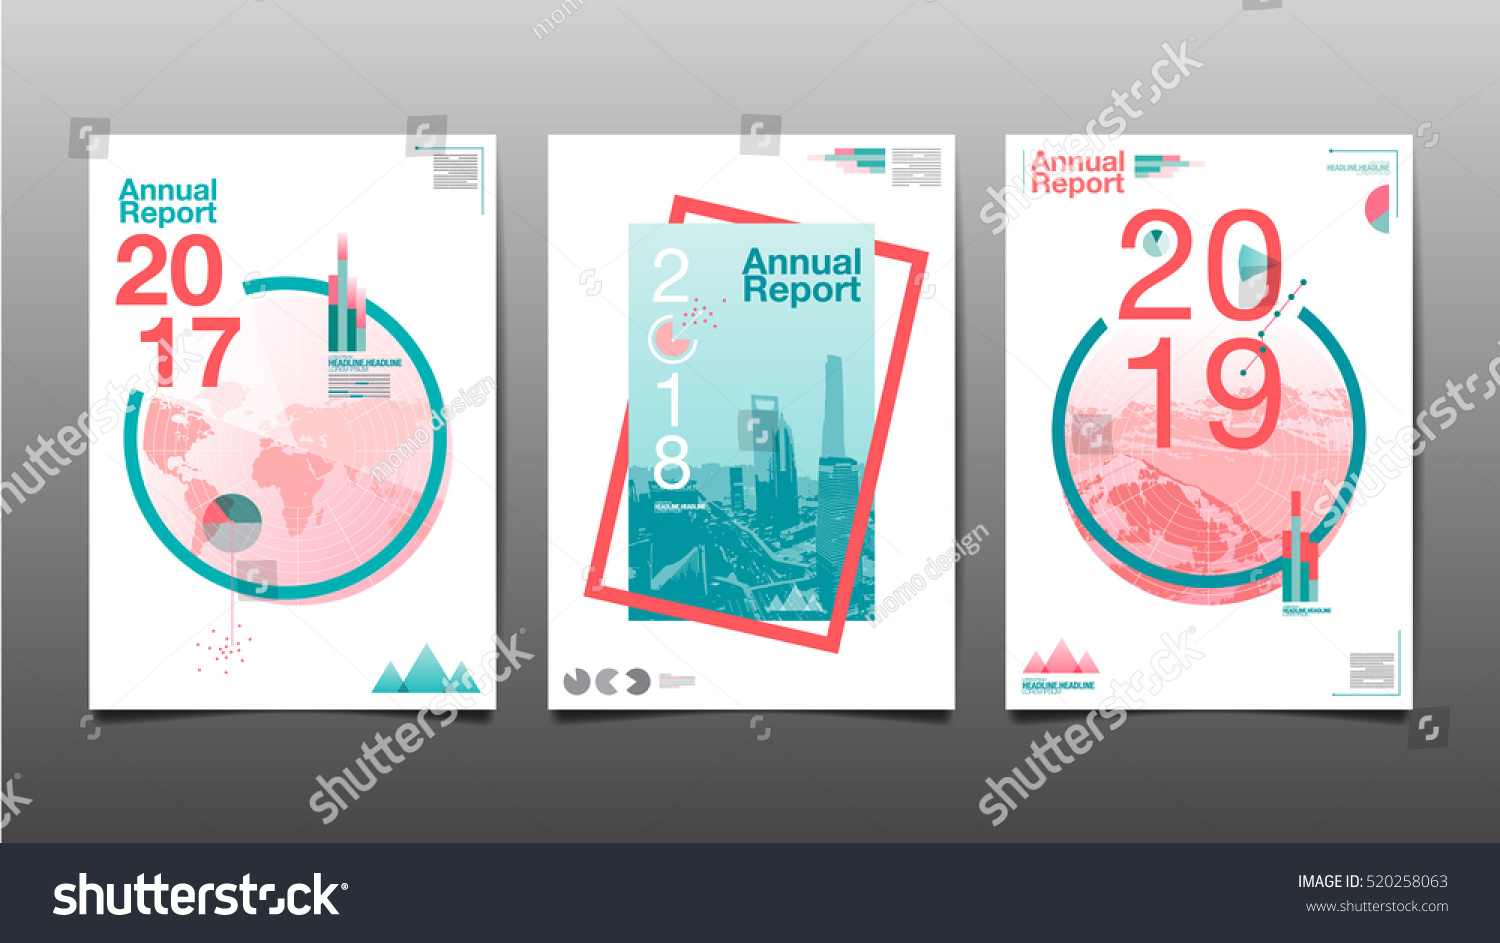 Corporate Book Cover Design Vector : Annual report future business template layout